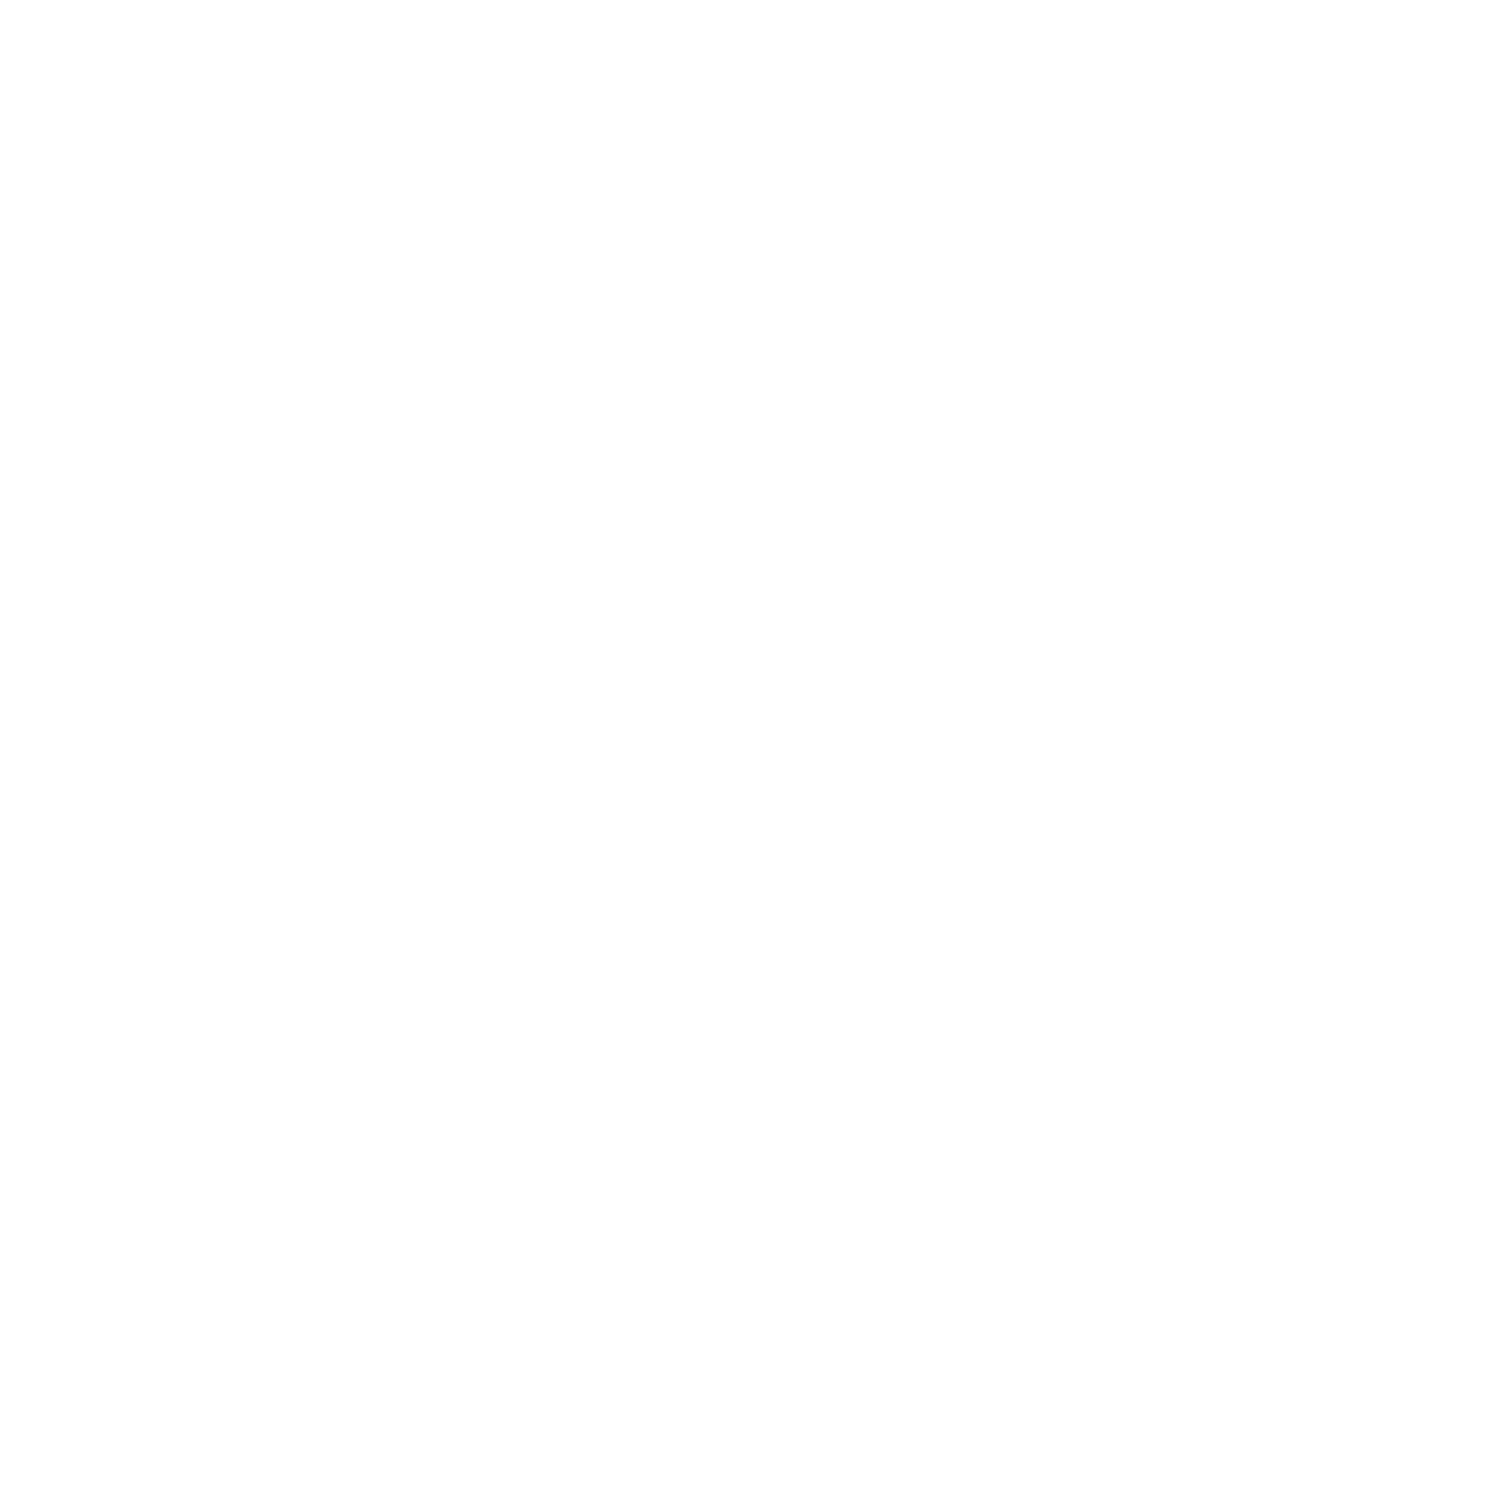 The Crown in St Albans